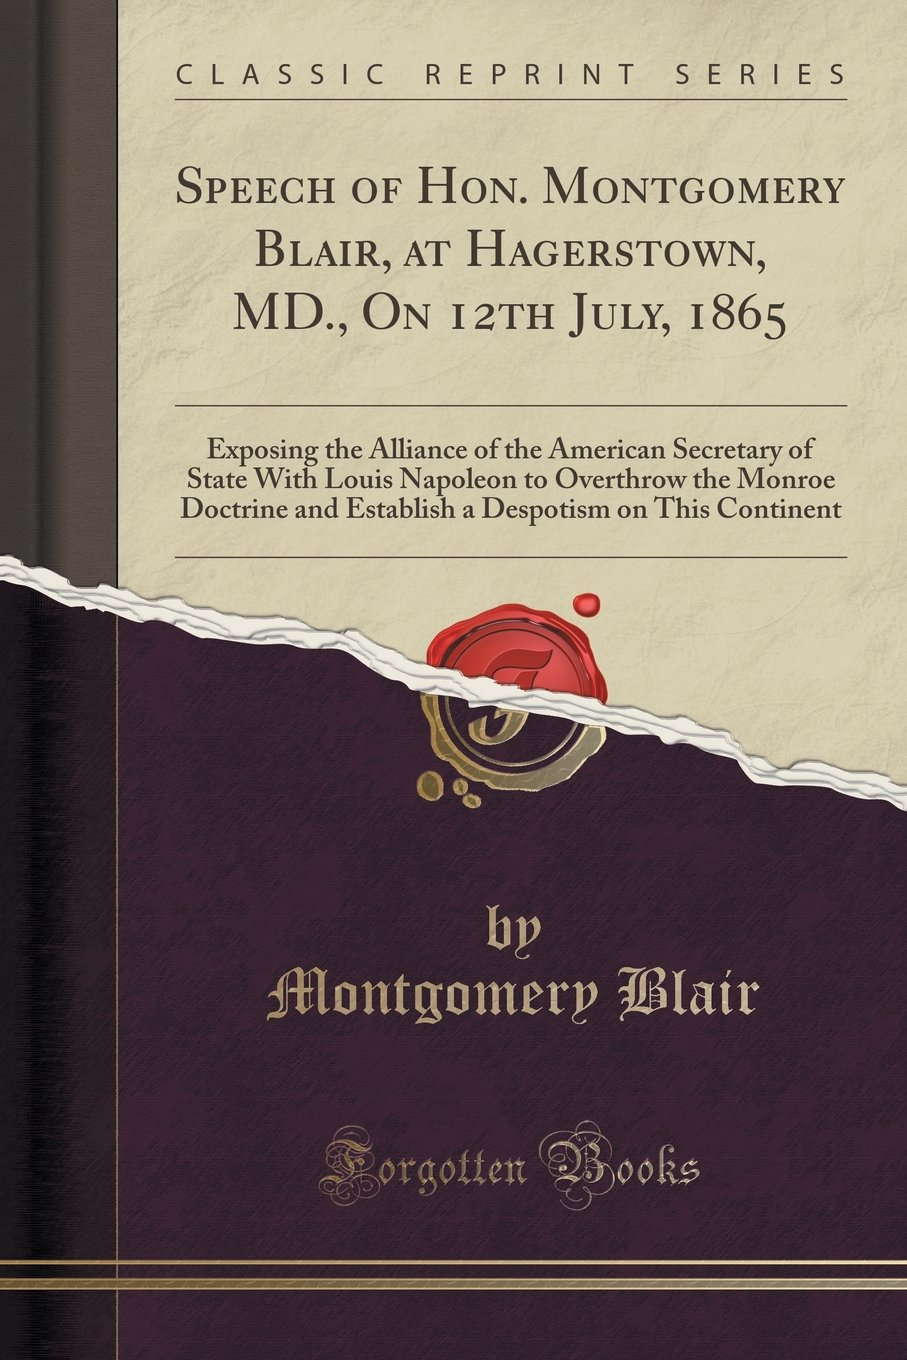 Speech of Hon. Montgomery Blair, at Hagerstown, MD., On 12th July, 1865: Exposing the Alliance of the American Secretary of State With Louis Napoleon ... Despotism on This Continent (Classic Reprint) PDF